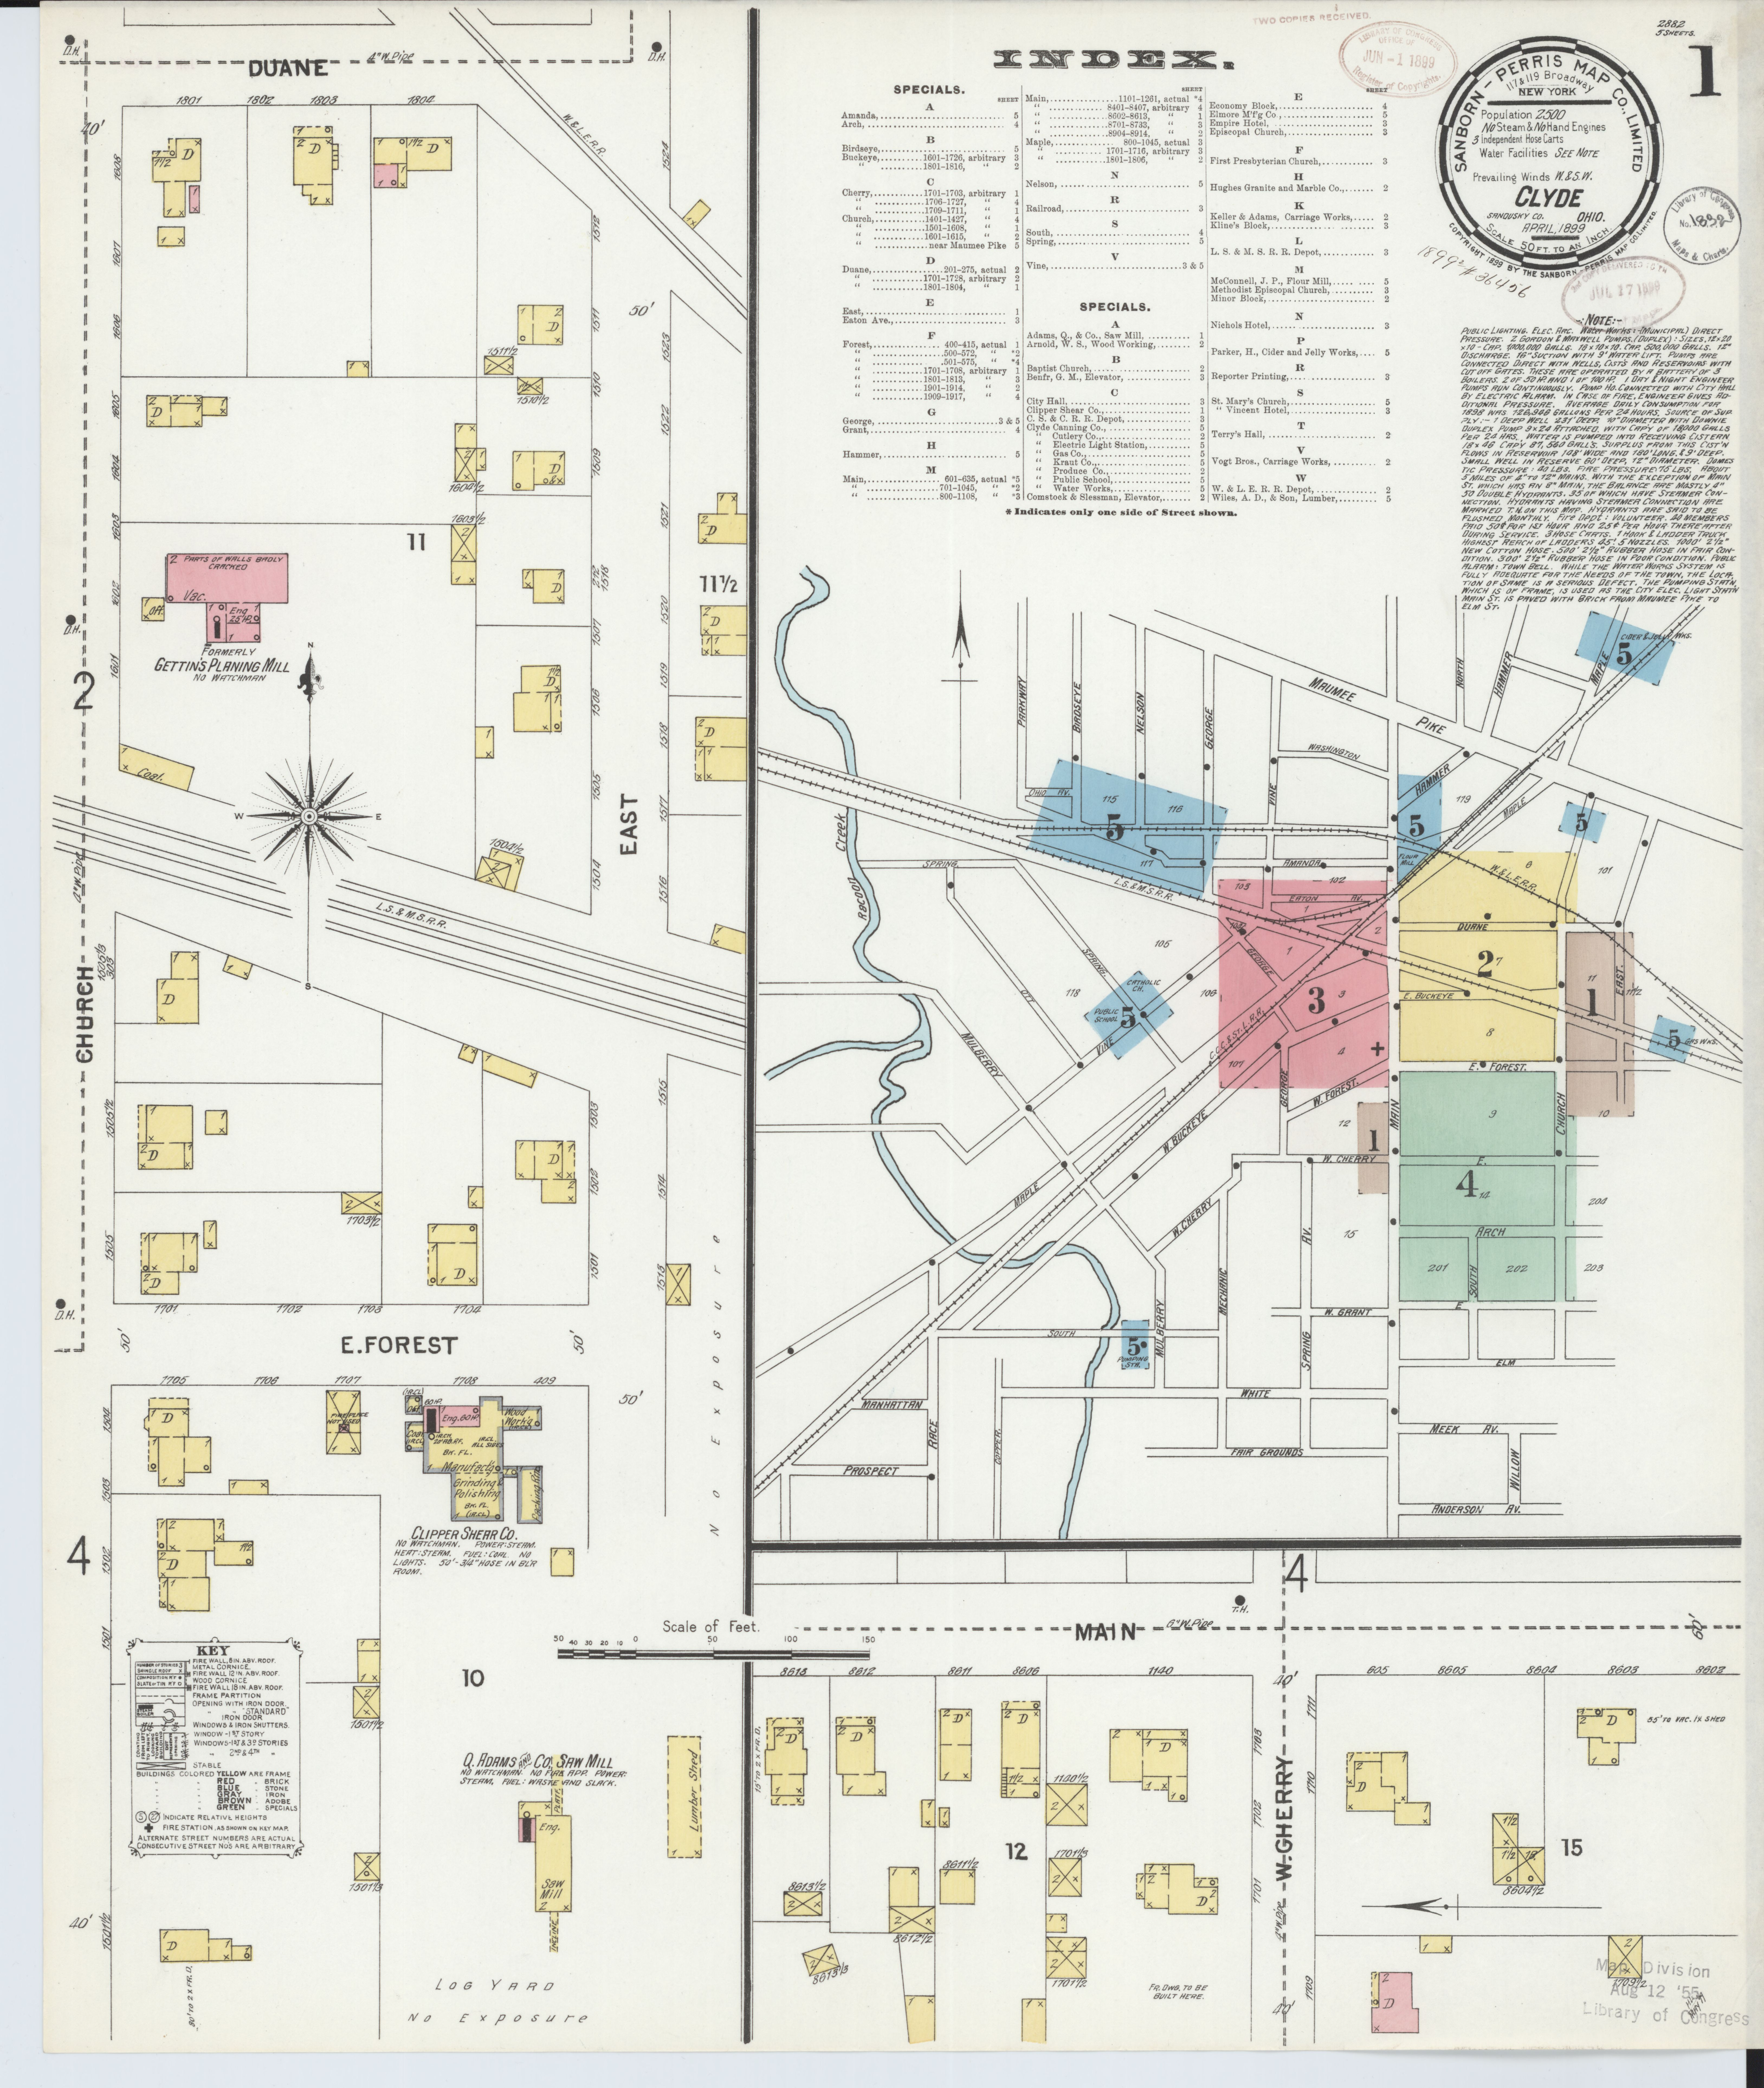 File:Sanborn Fire Insurance Map from Clyde, Sandusky County ... on northwest ohio cities map, bowling green state university ohio map, erie county ohio map, sandusky ohio road map, ottawa county ohio map, city of youngstown ohio map, sandusky river ohio map, scioto county ohio map, seneca county ohio map, upper sandusky ohio map, wood county ohio map, sandusky ohio folded street map, ohio ohio map, wyandot county ohio map, fremont ohio map, fort sandusky ohio map, eaton ohio street map, cuyahoga county ohio map, wake forest ohio map, henry county ohio map,